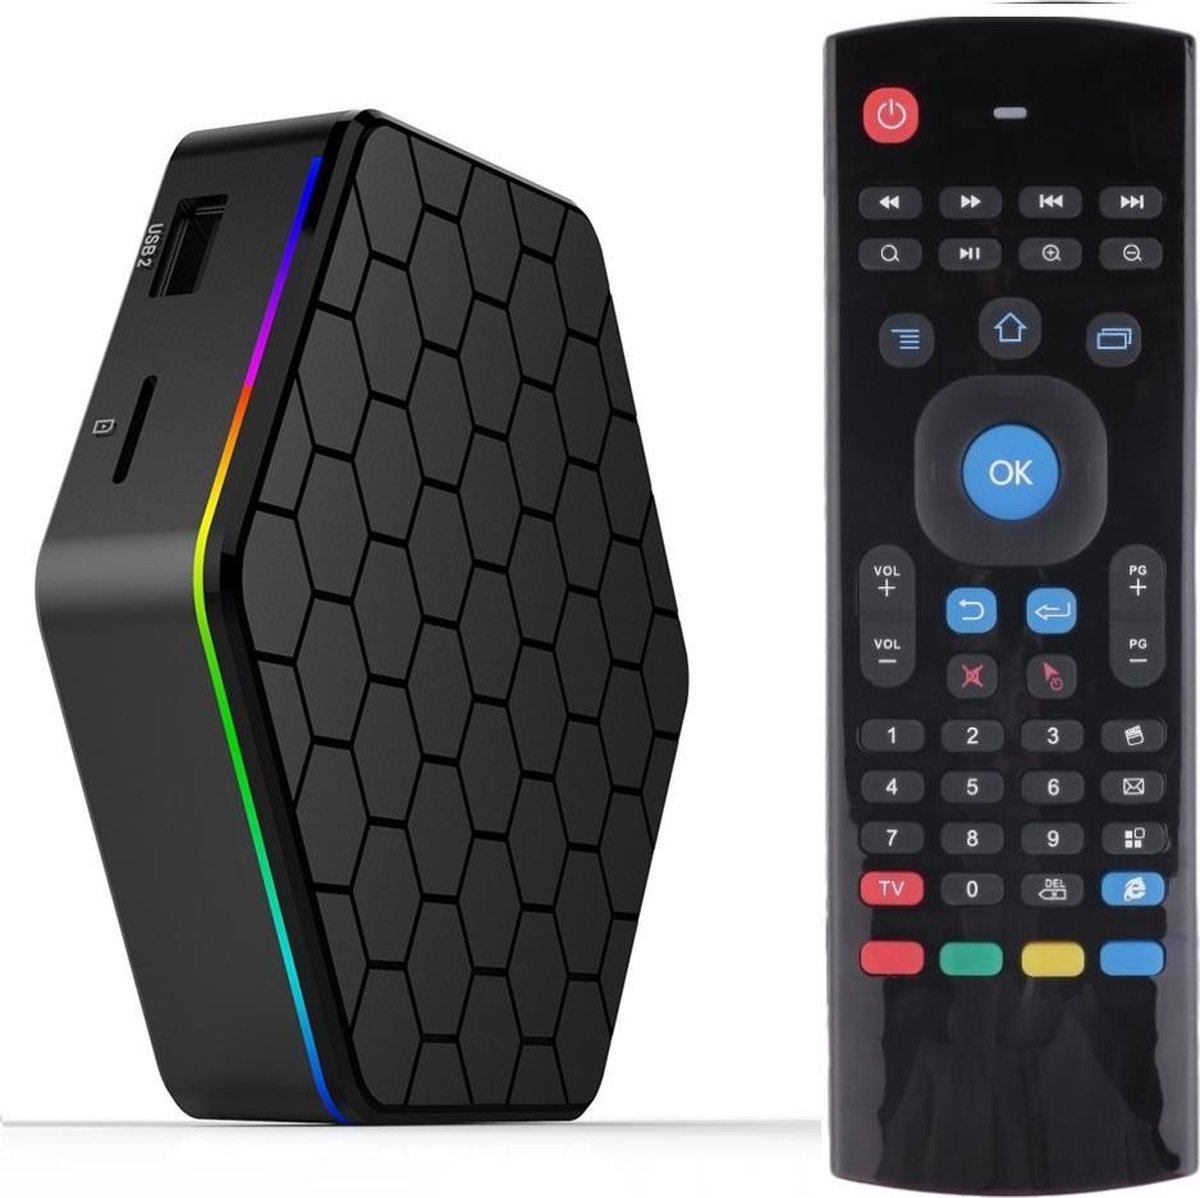 3GB/32GB 2017 T95Z plus Android TV Box Inclusief DRAADLOZE MX3 AIR MOUSE